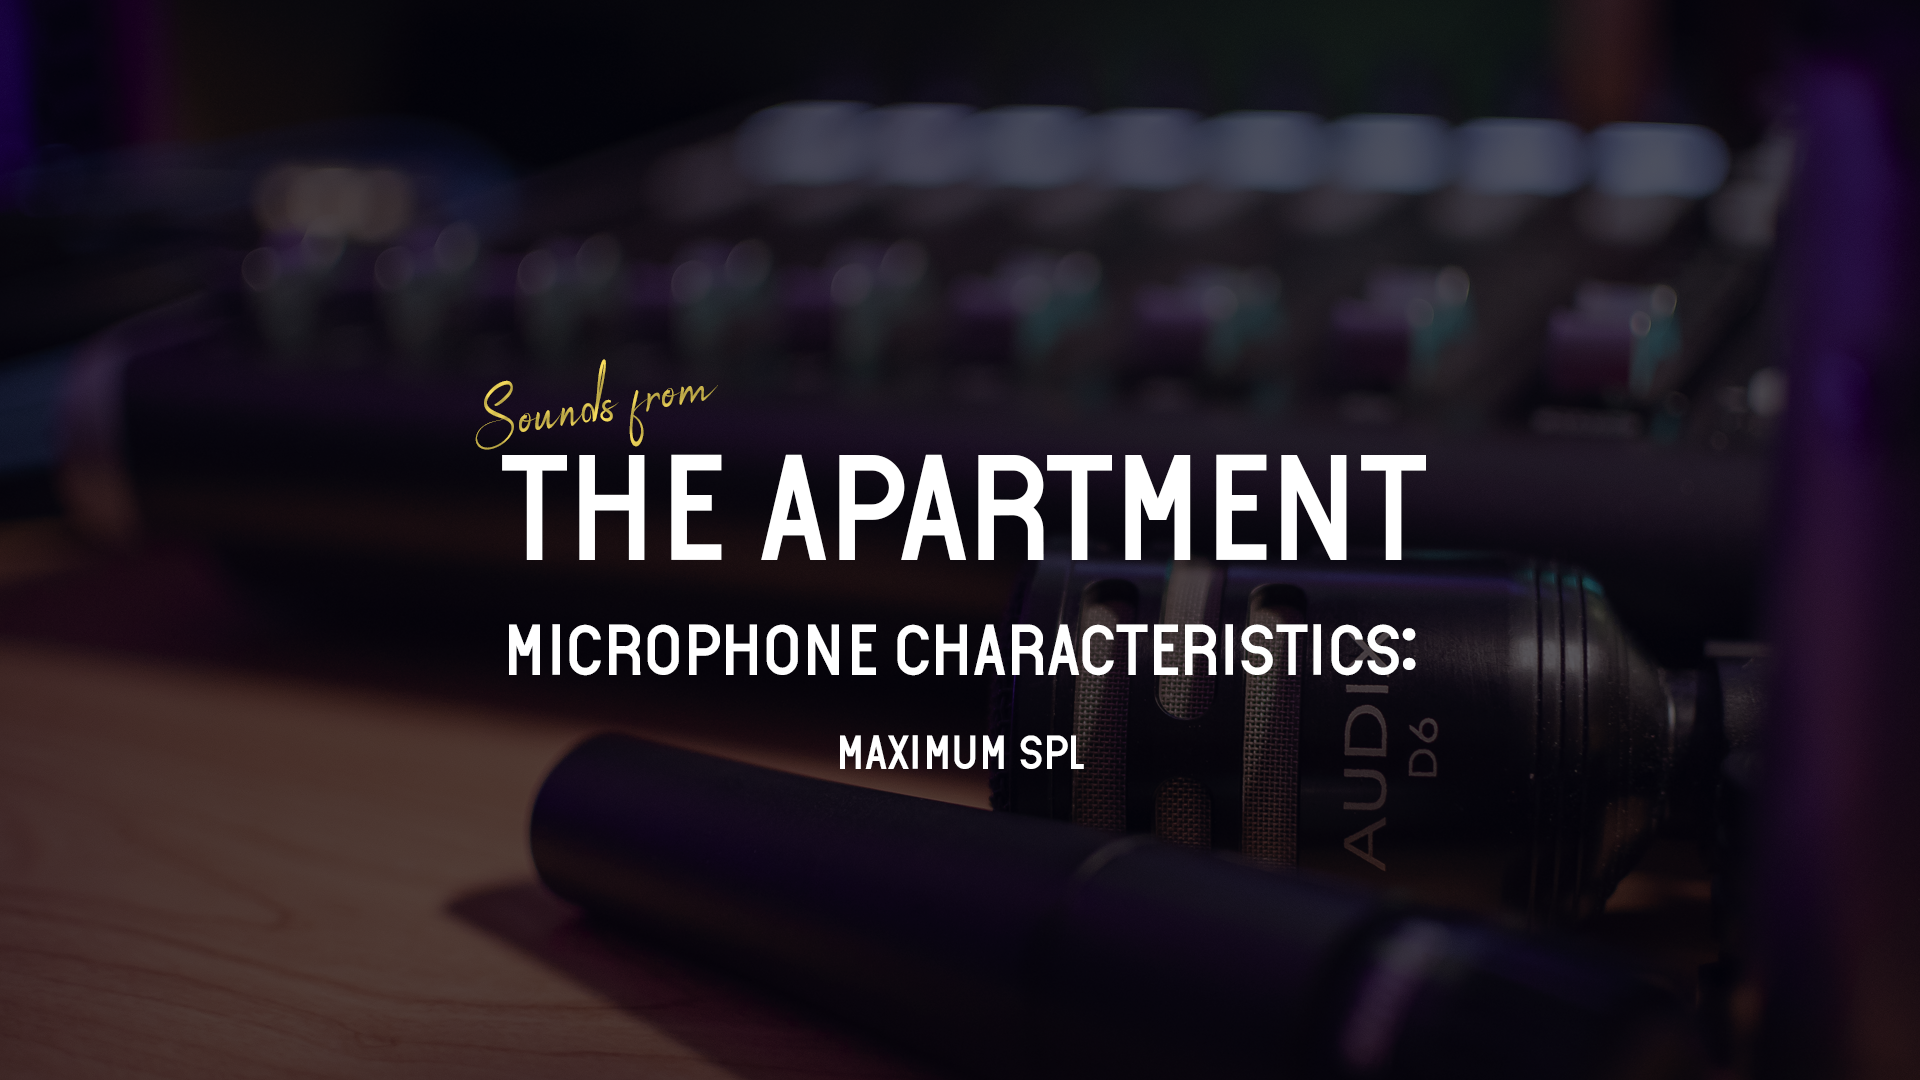 Sounds from the apartment article maximum spl